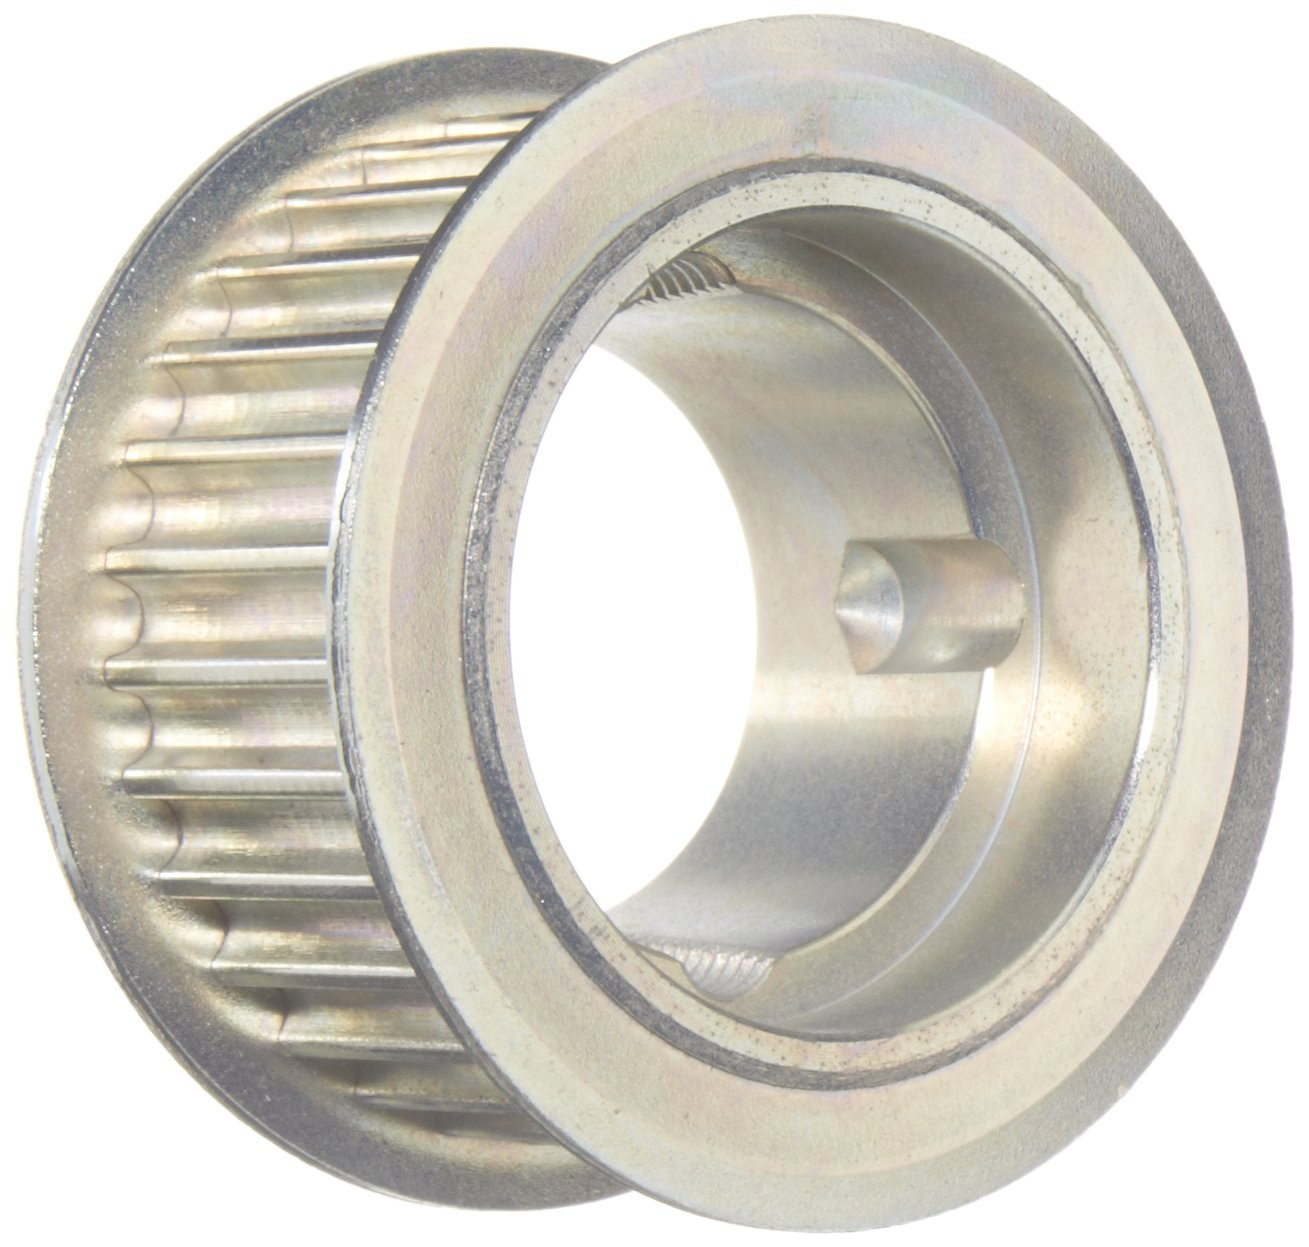 Gates P30-8MGT-30 GT 2 PowerGrip Steel Sprocket 3.008 Pitch Diameter 8mm Pitch 30 Groove For 30mm Width Belt 3.008 Pitch Diameter 1//2 to 1-1//4 Bore Range 77083030 1//2 to 1-1//4 Bore Range